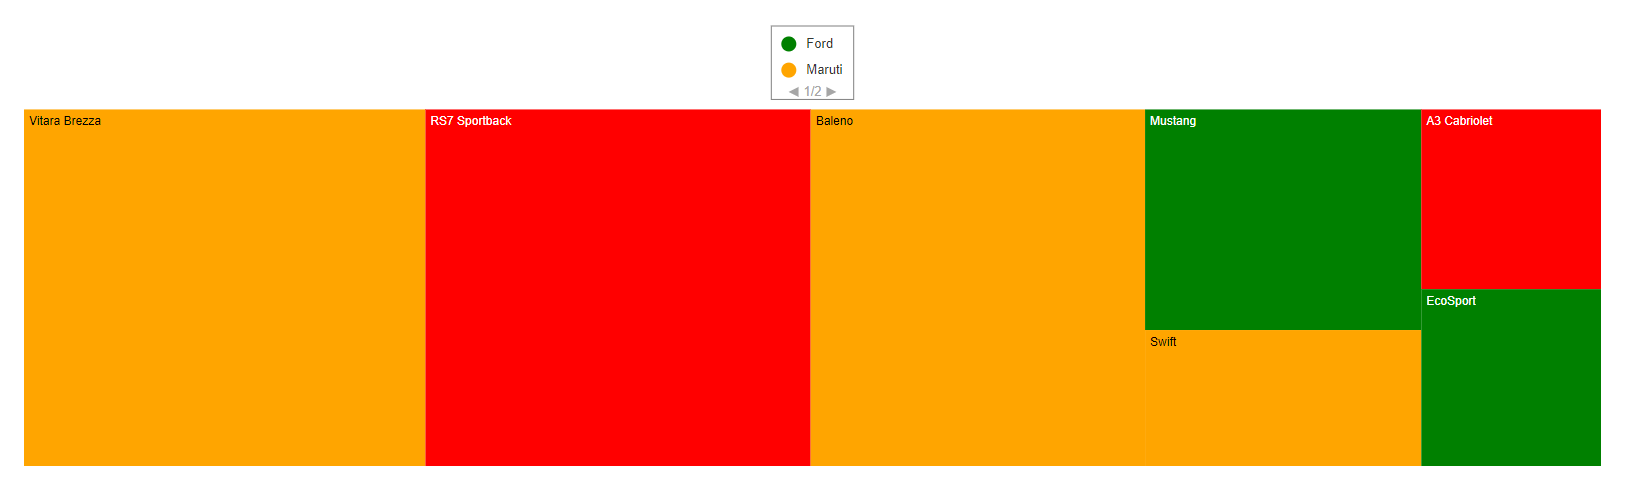 TreeMap legend with paging